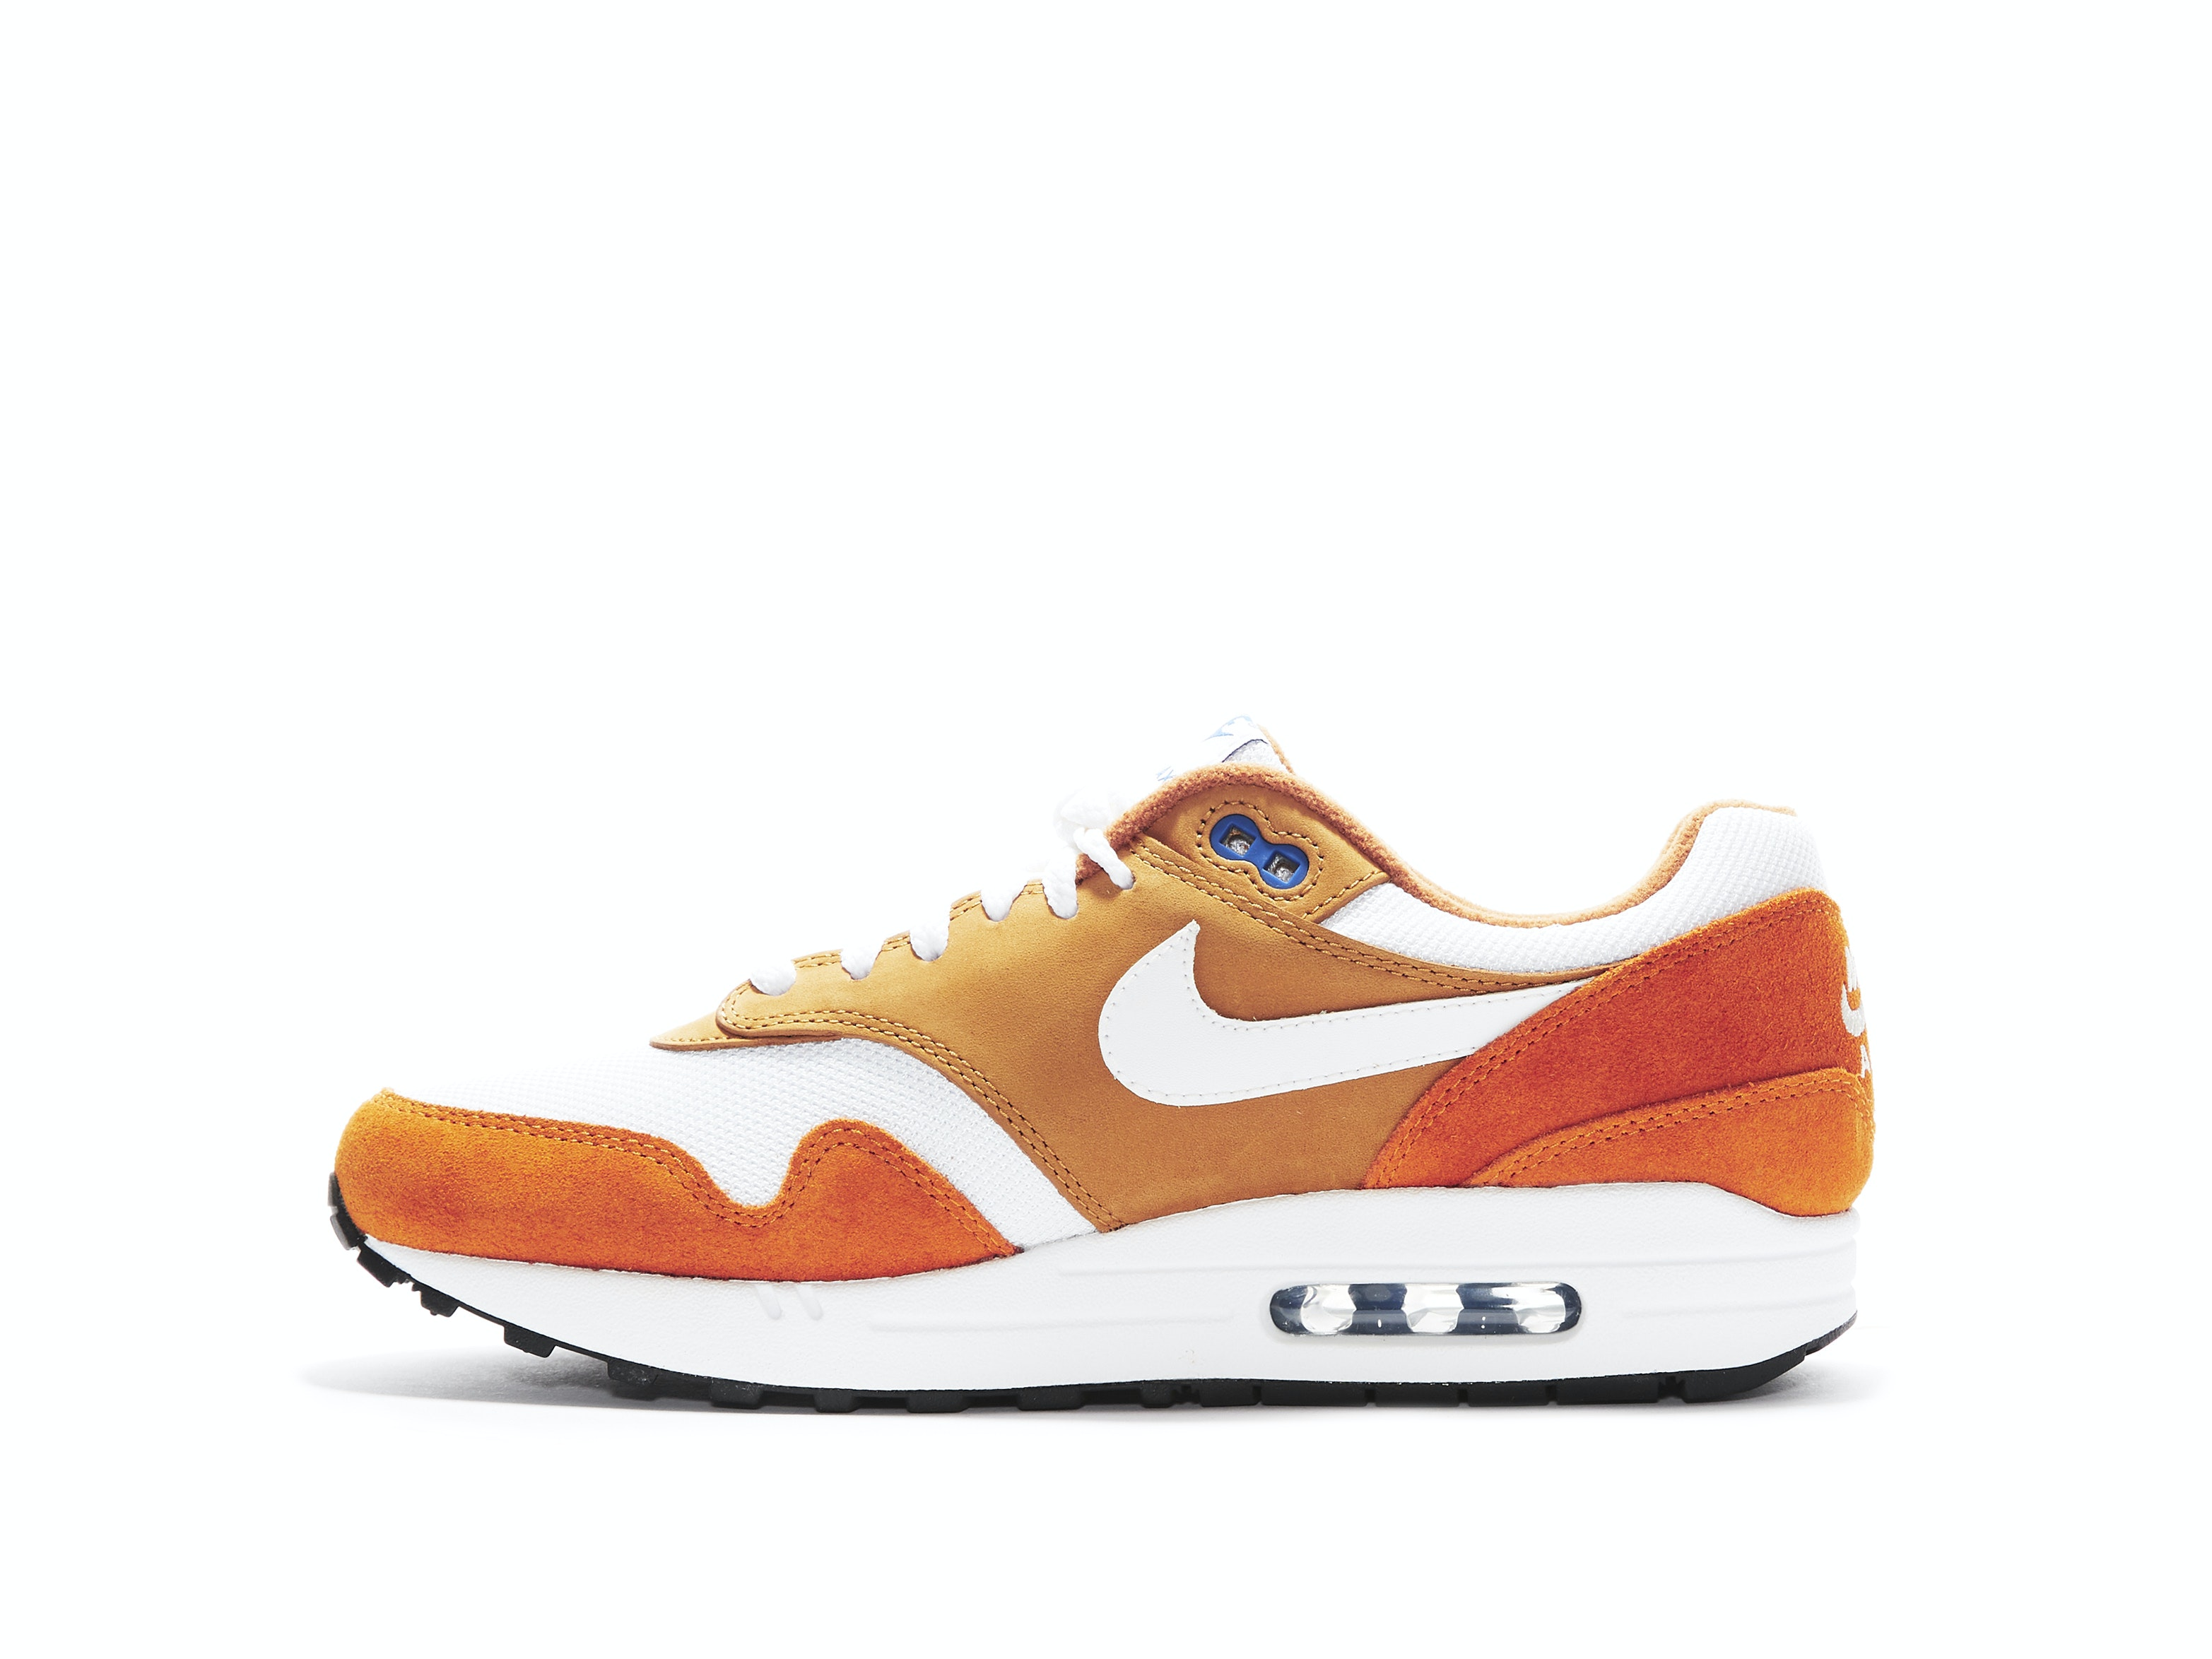 low priced cdfb7 b8d09 Air Max 1 Premium Retro Curry. 100% AuthenticSold out! Nike   908366-700